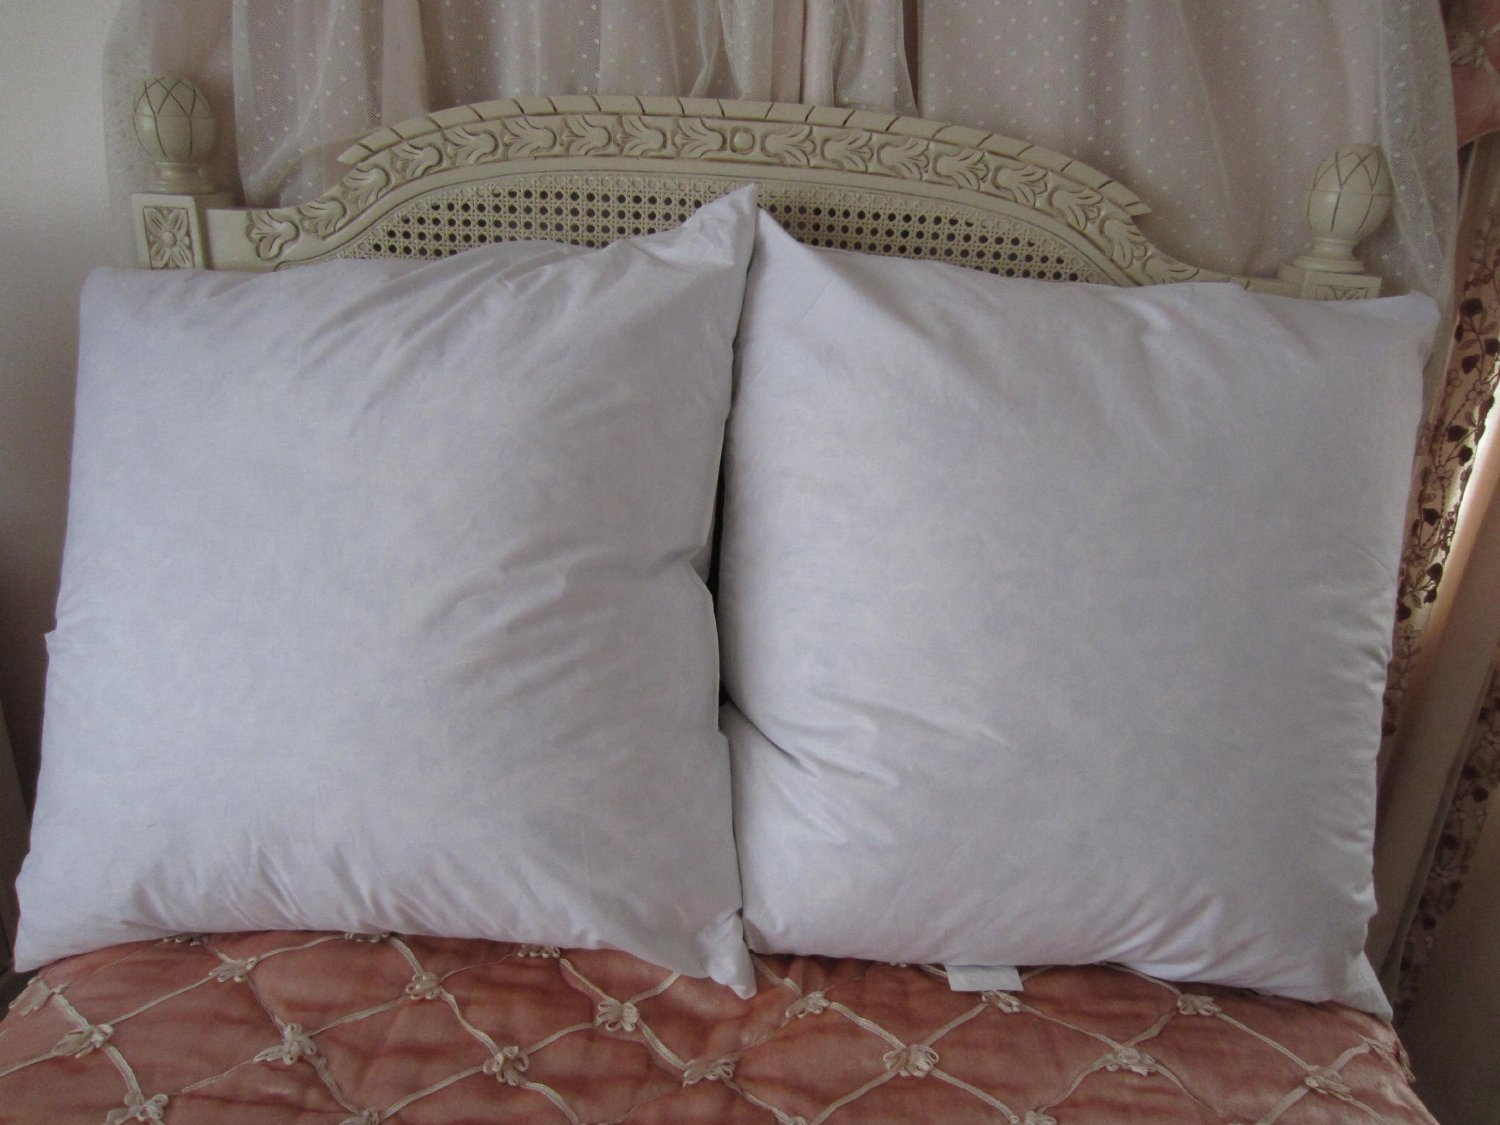 pillows deluxefanddpillow down snow sheridan feather deluxe pillow filled